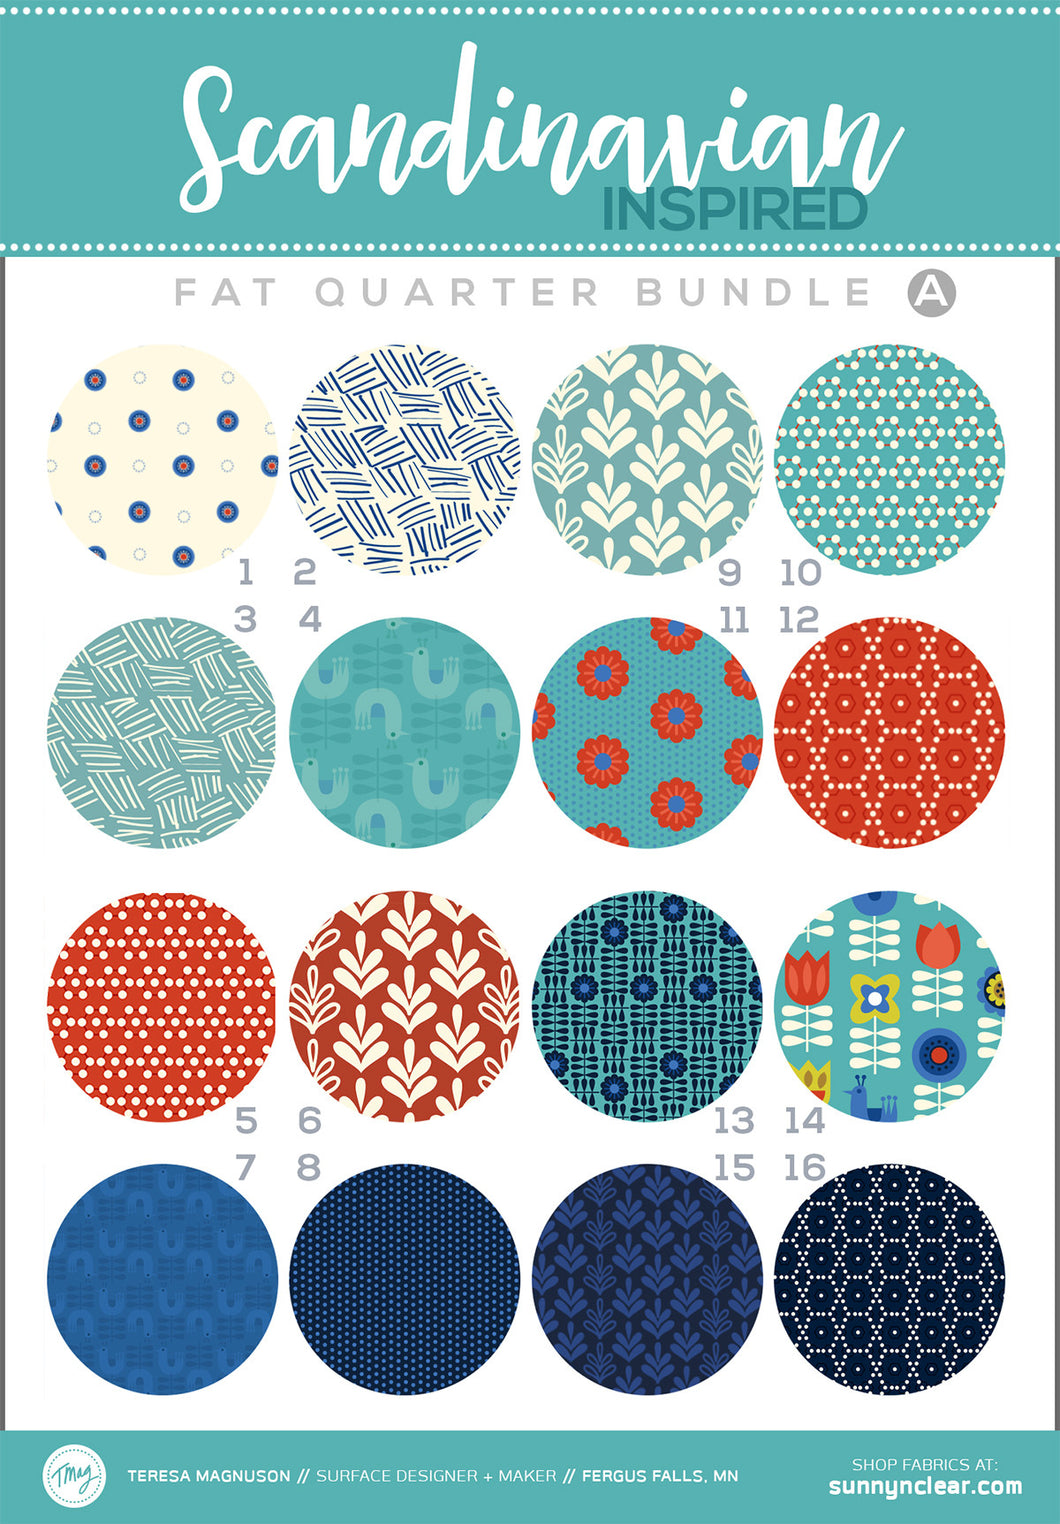 Fat Quarter Bundle - Scandinavian - Aqua